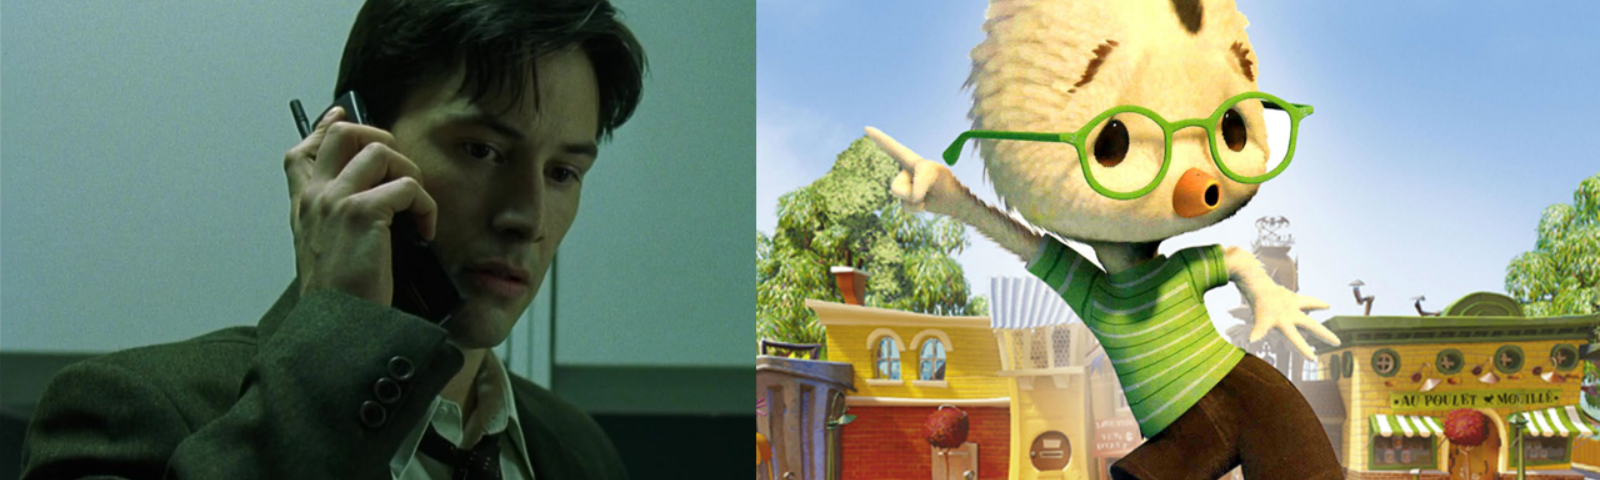 The Shocking Similarities Between The Matrix 1999 And Chicken Little 2005 By Badgerguy79 Medium